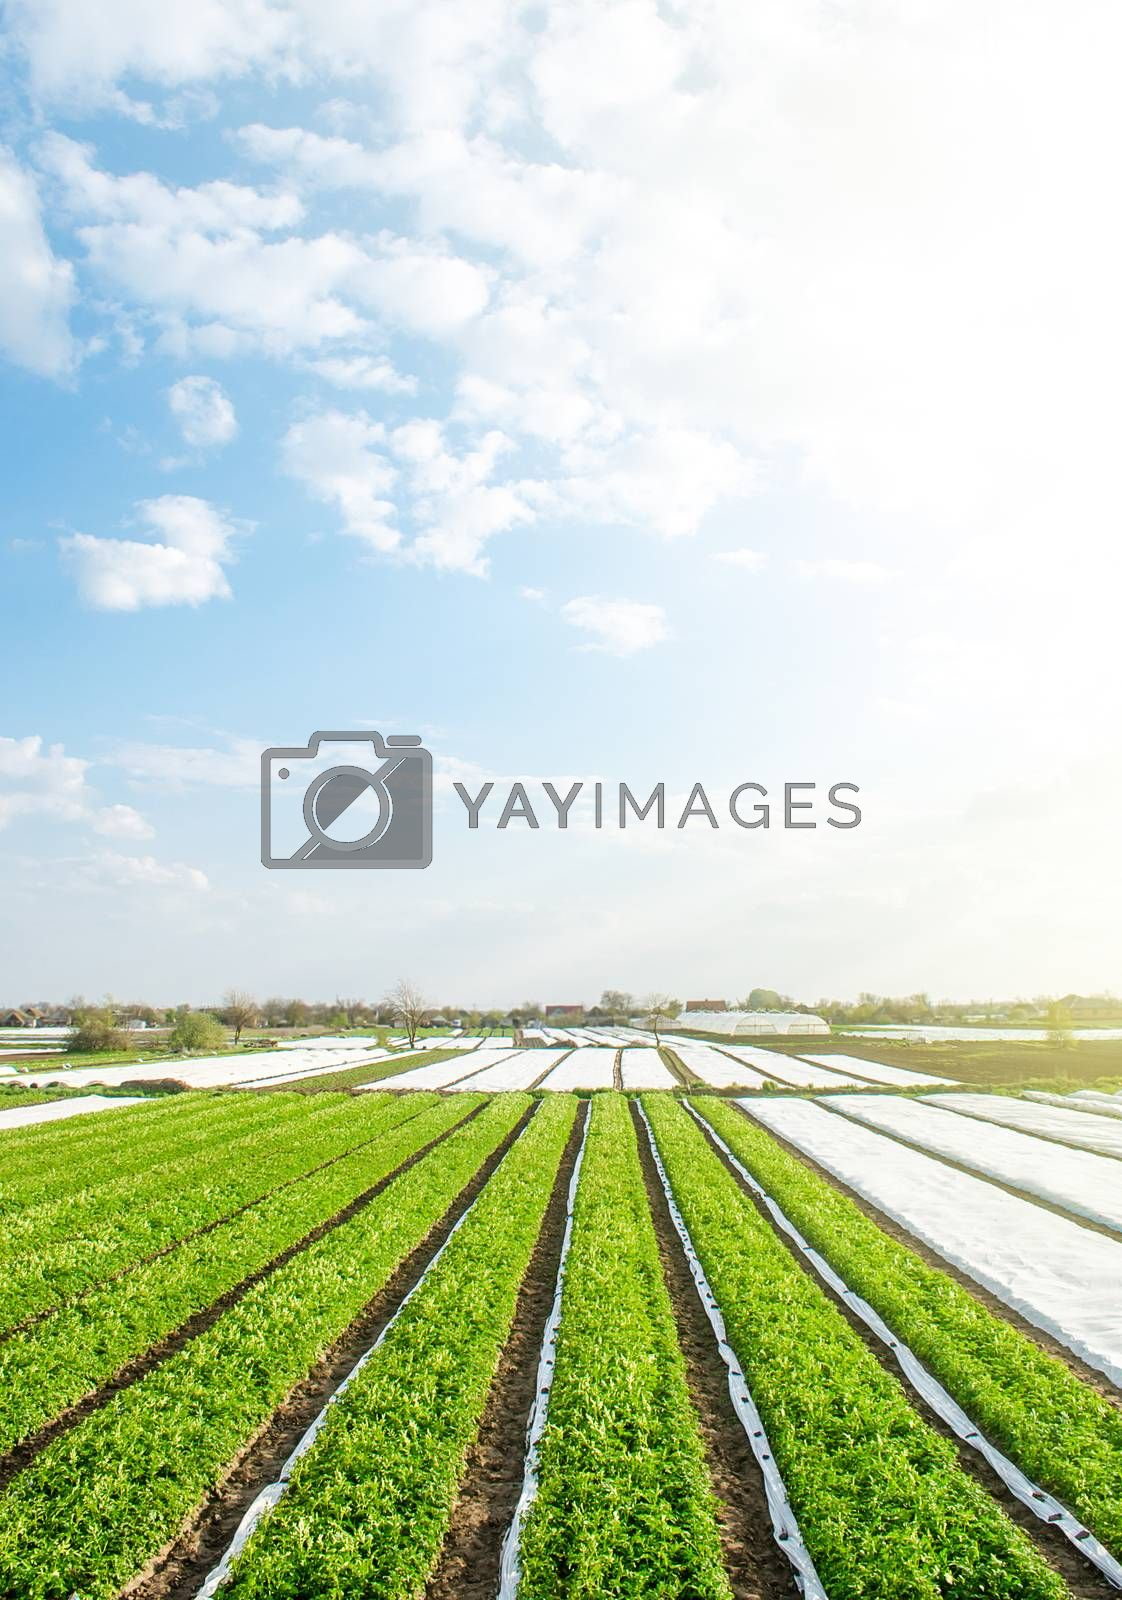 Green farm potato fields on an sunny morning day. Agricultural industry growing potatoes vegetables. Agroindustry and agribusiness. Organic farming products in Europe. Beautiful countryside landscape by iLixe48